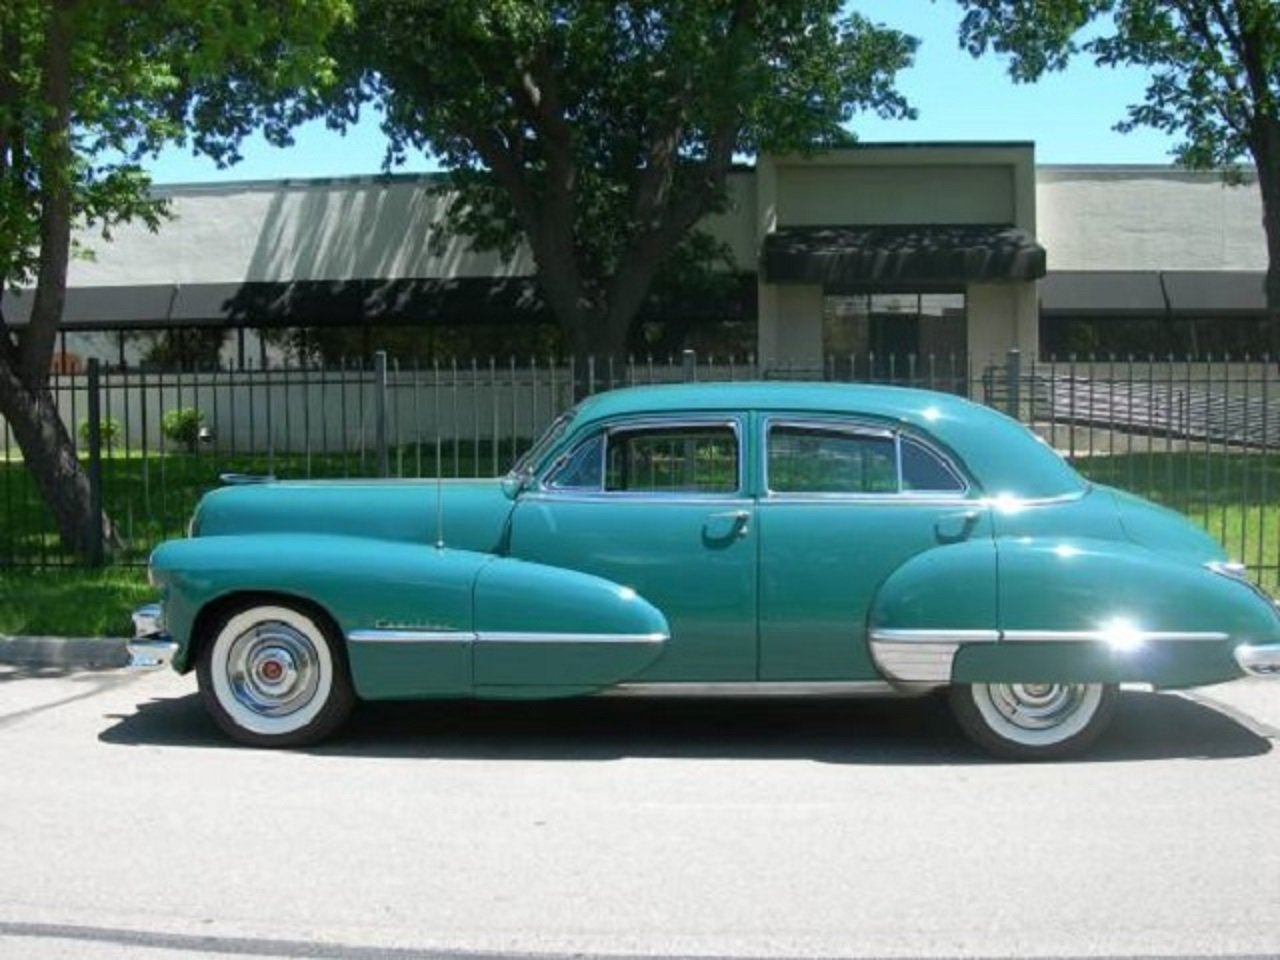 1947 Cadillac 62 4DR Sedan For Sale (picture 1 of 6)